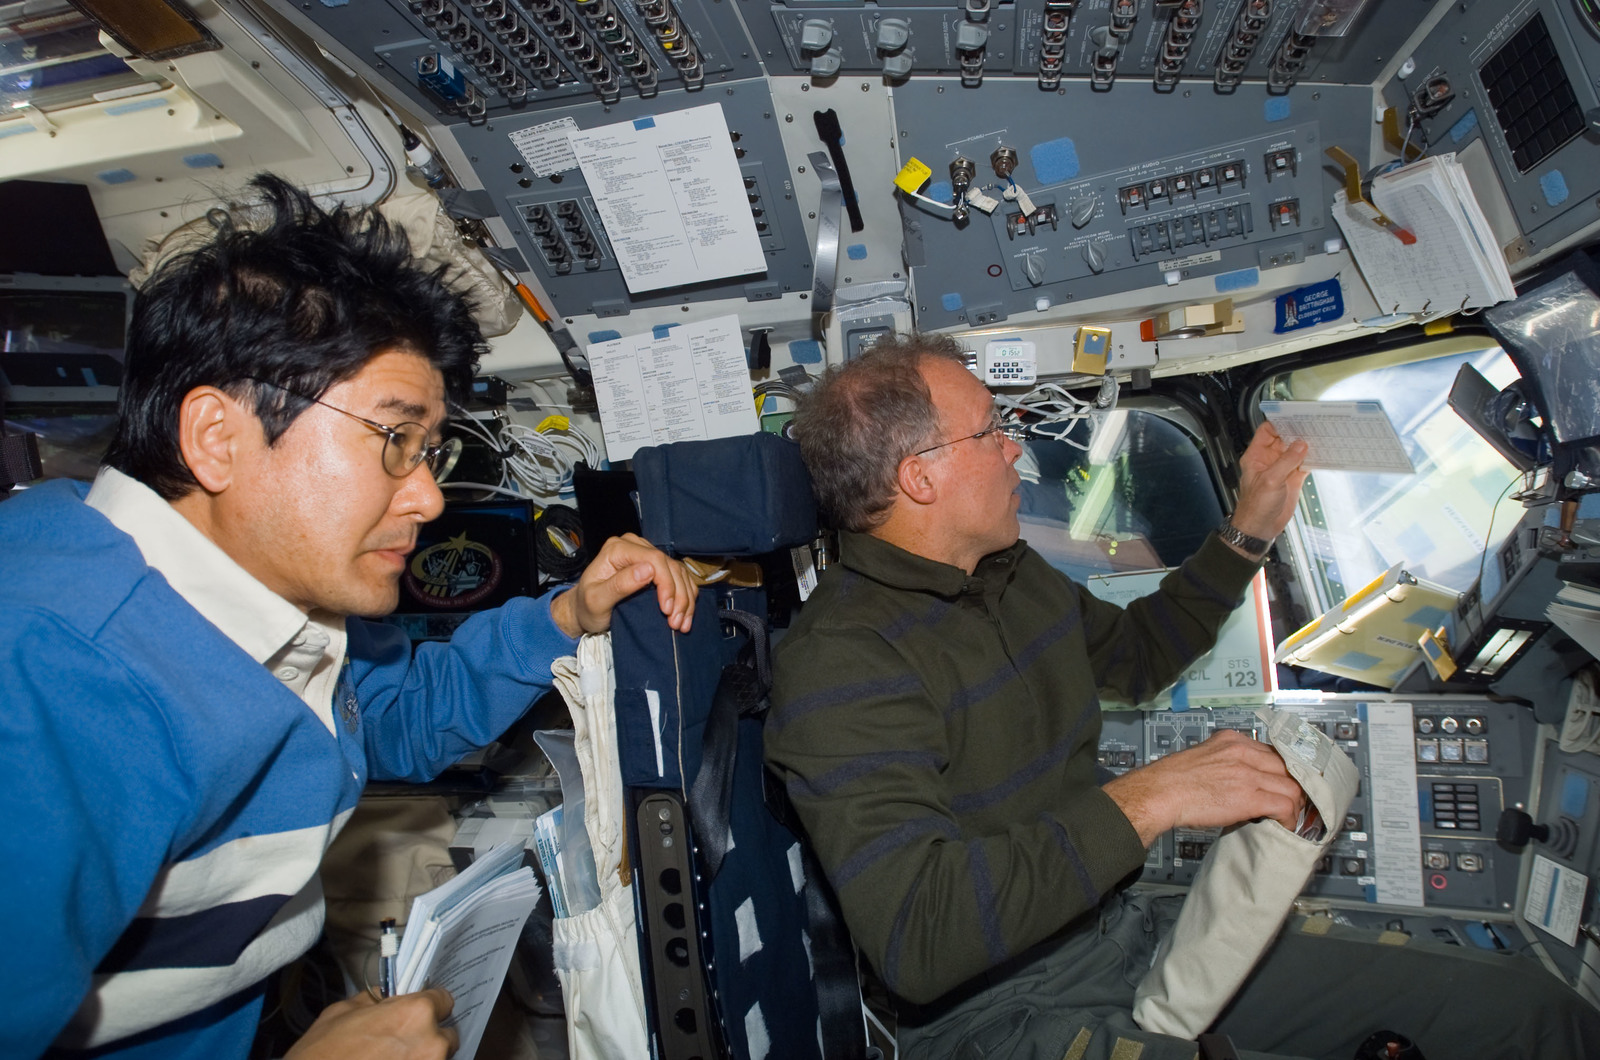 S123E005634 - STS-123 - Gorie looks at crew procedures in the aft FD during STS-123 mission